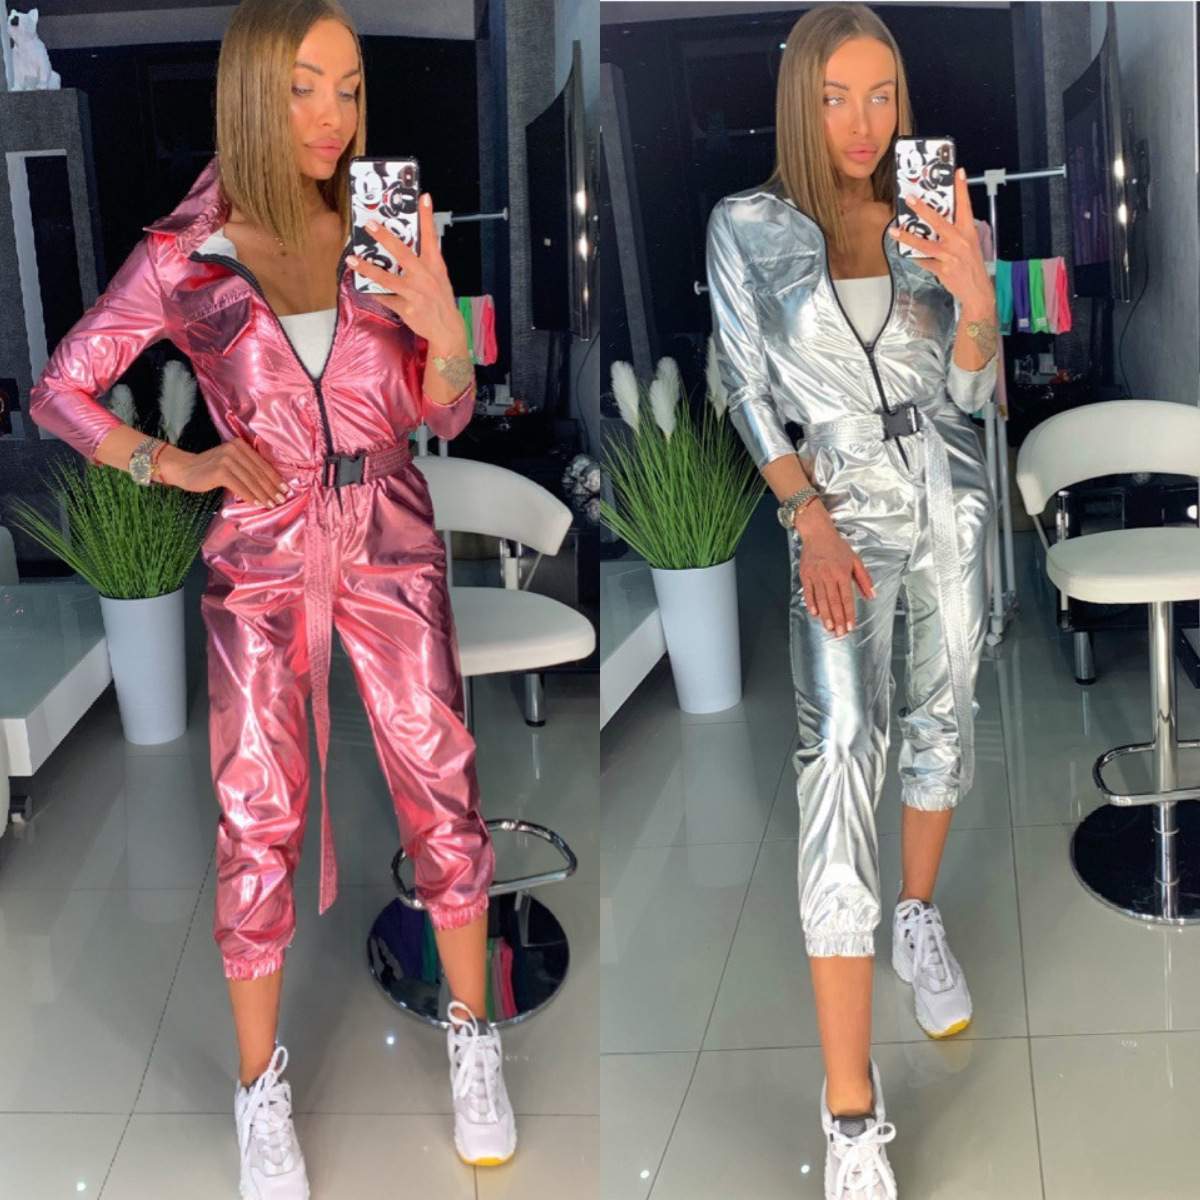 2020 Women Fashion Street Sports Jumpsuit Long Sleeve Shiny Glitter Holographic Overall  Silver Laser Hologram Glossy Romper